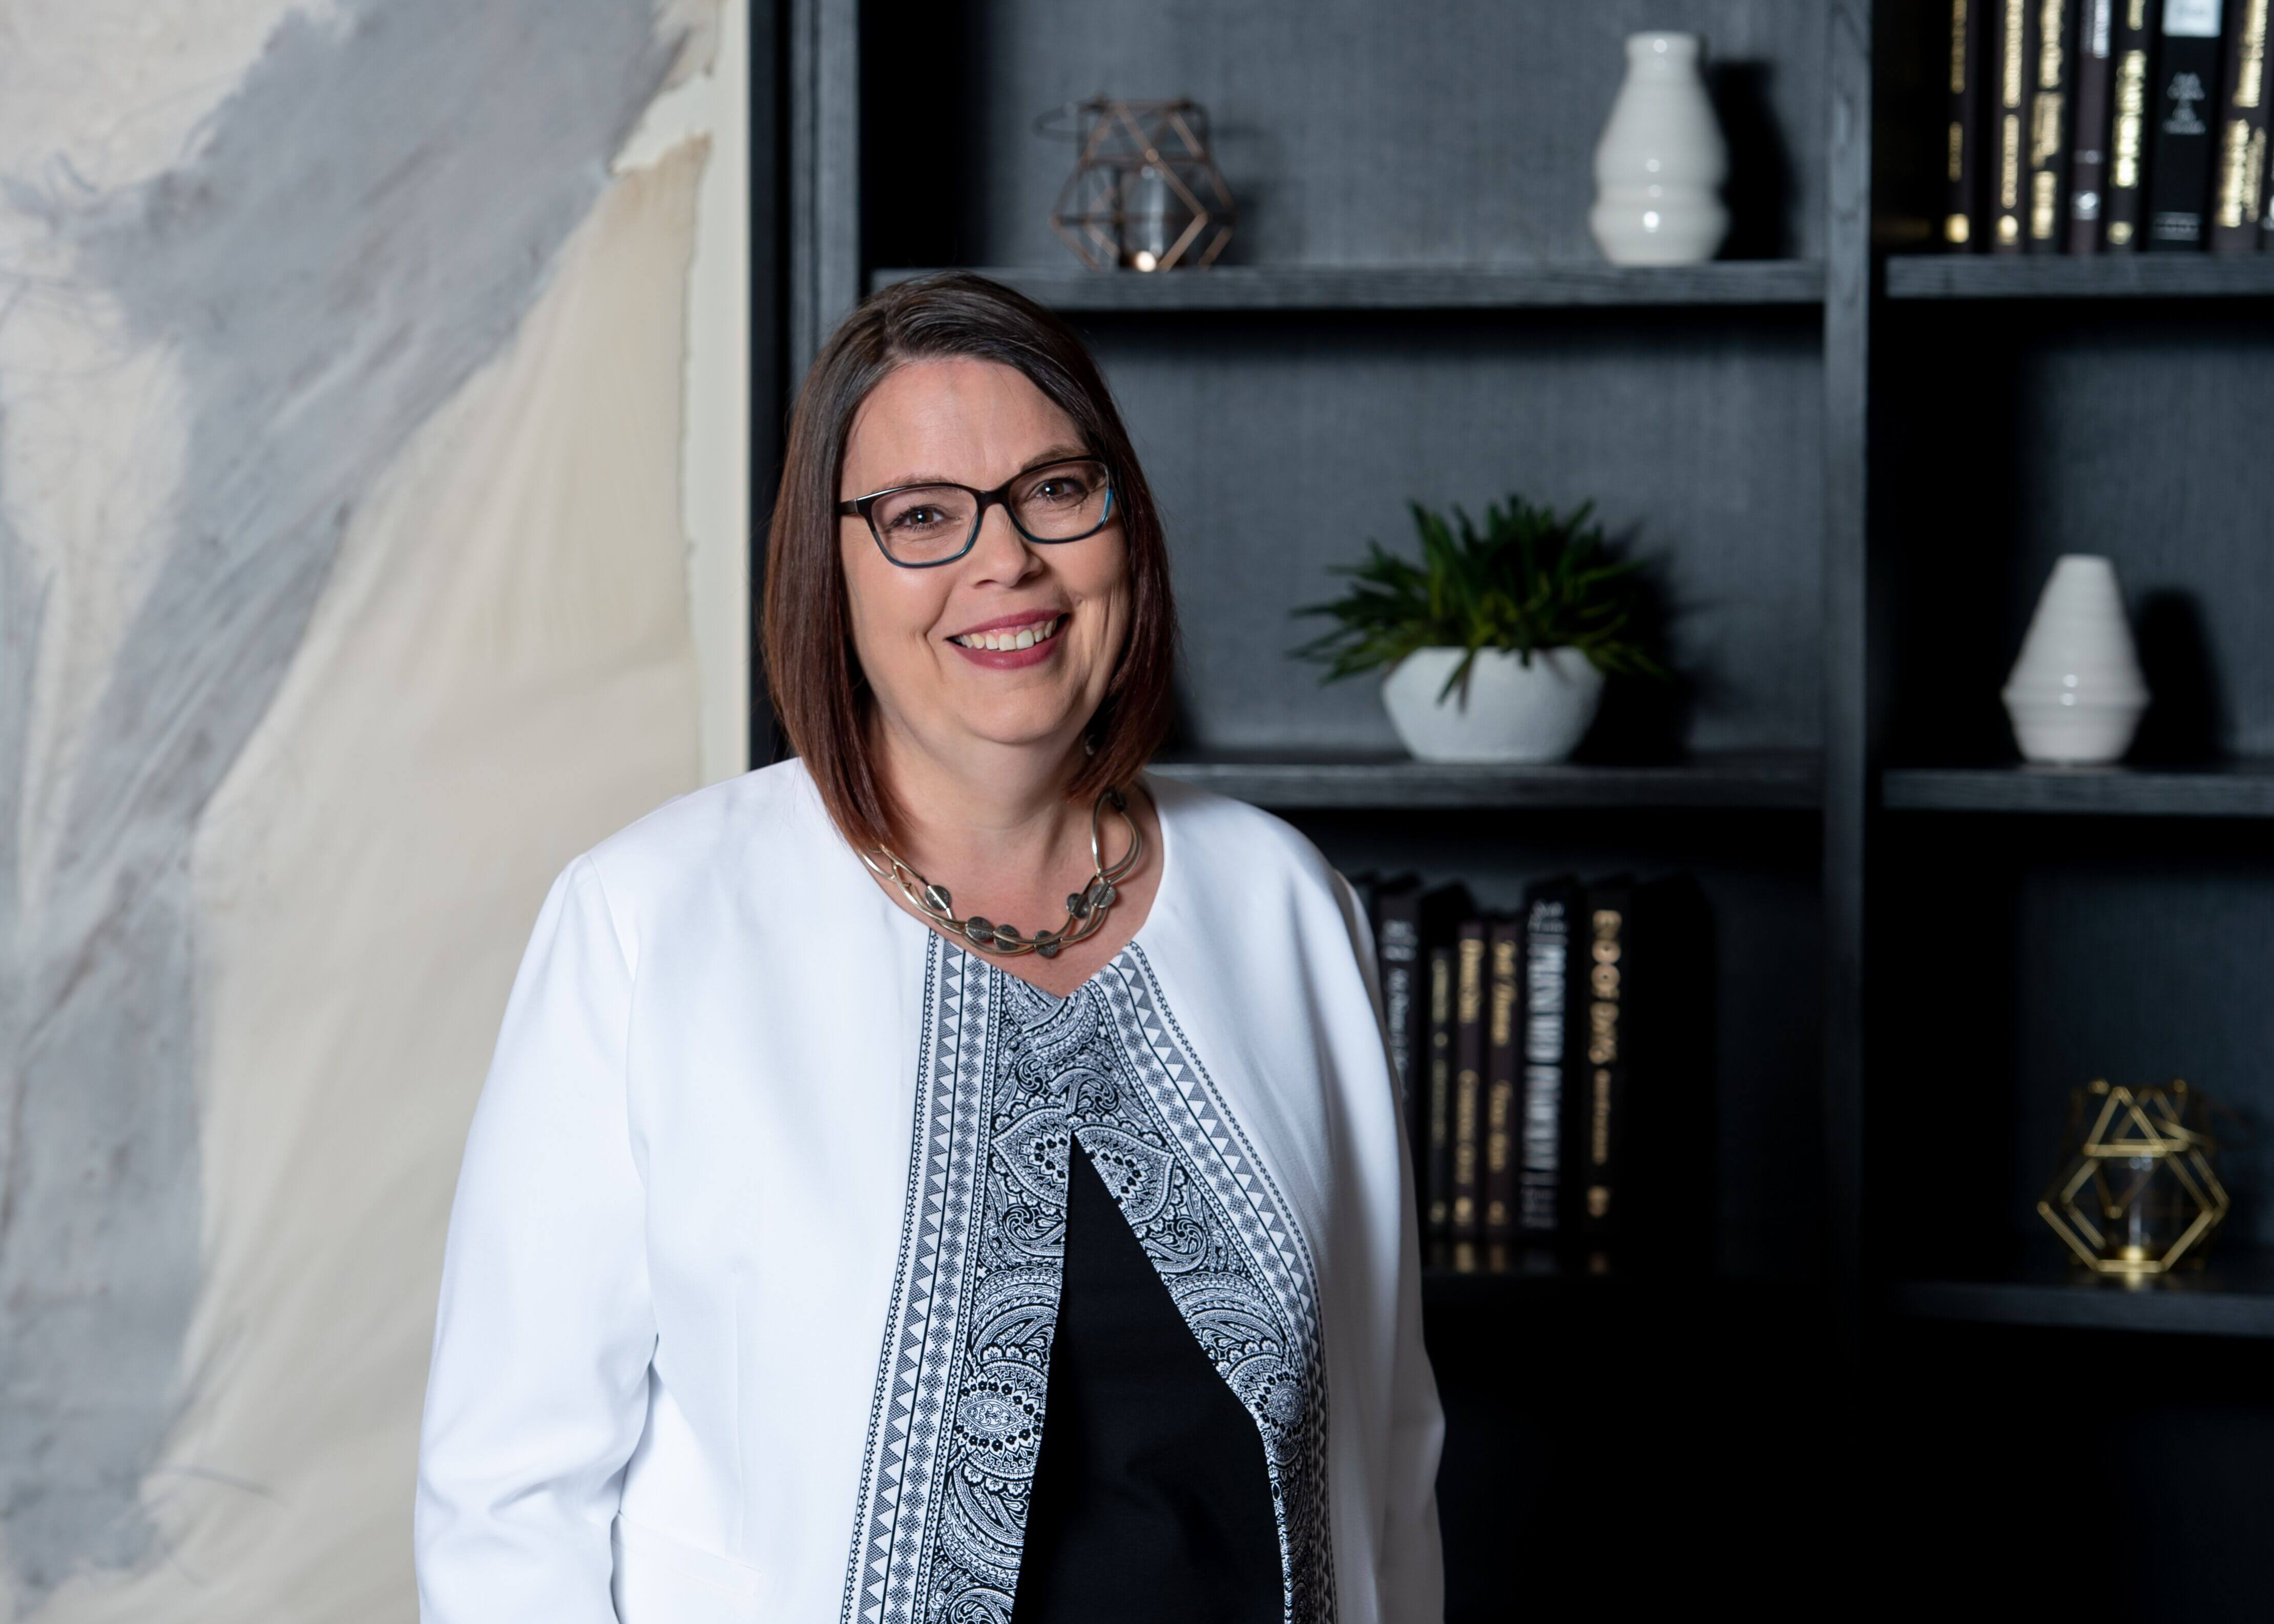 Kimpton Glover Park Hotel appoints new senior catering sales manager